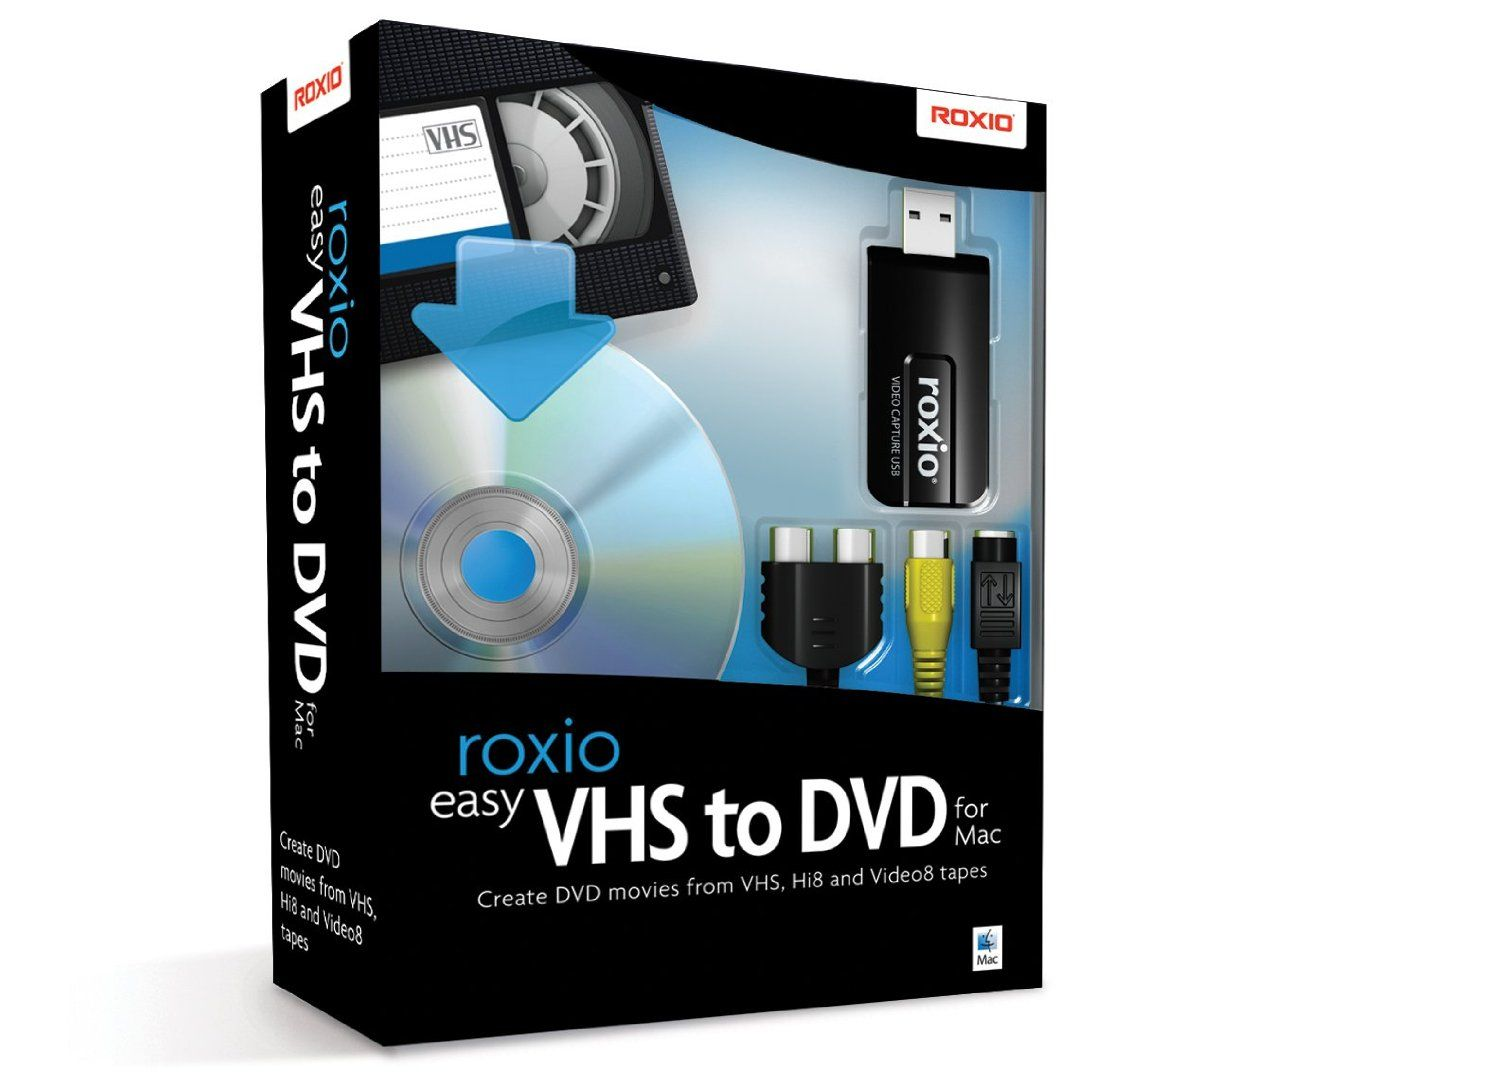 Amazon.com: Roxio Easy VHS to DVD for Mac | Products I Love ...